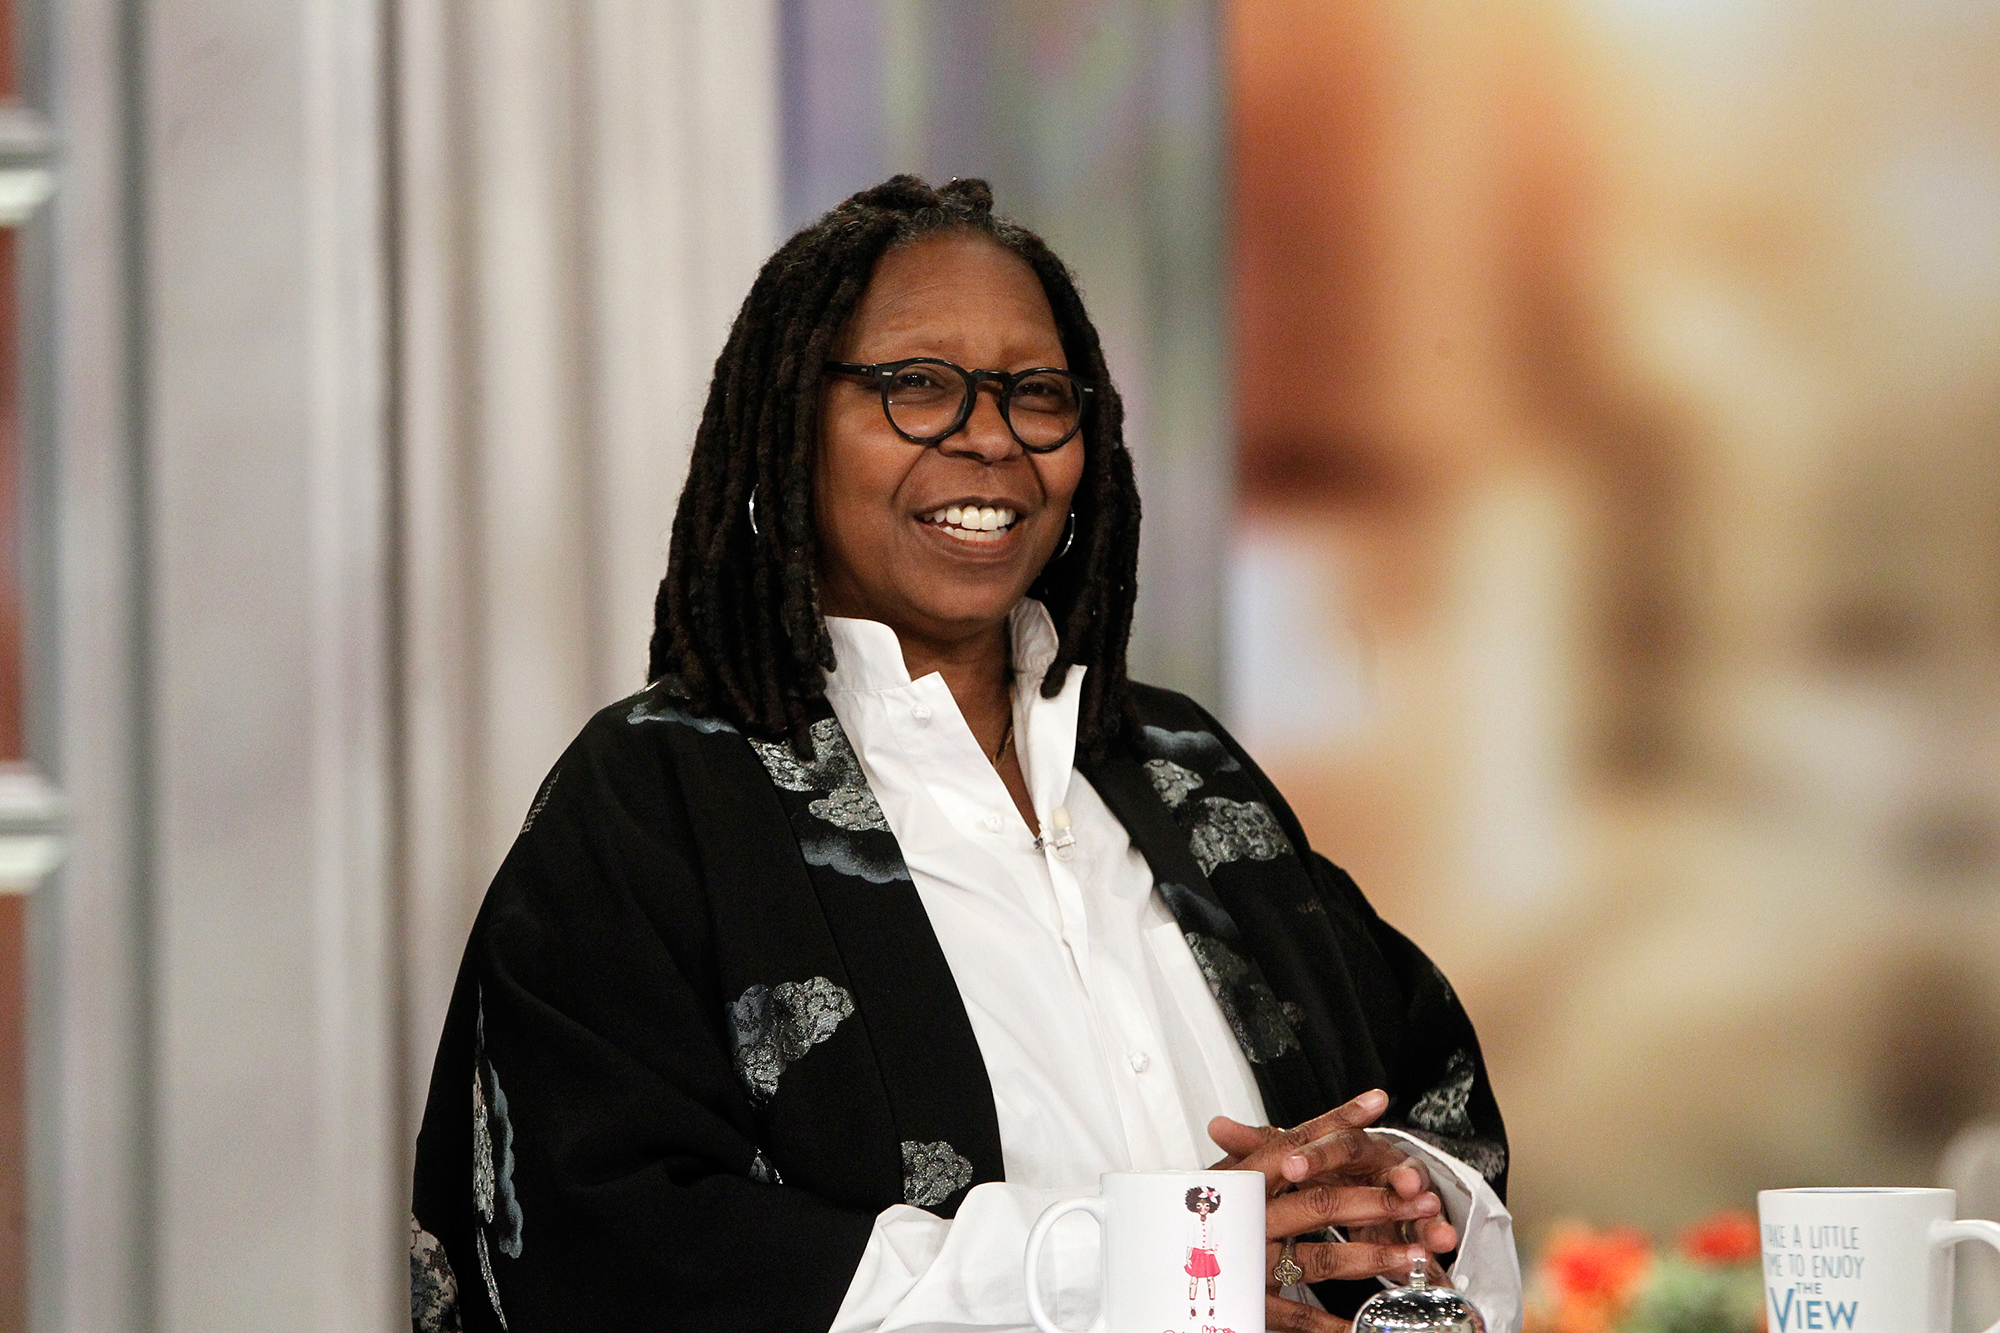 Whoopi Goldberg Speaks Out About Her 1-Month Absence From 'The View' Amid Pneumonia Bout